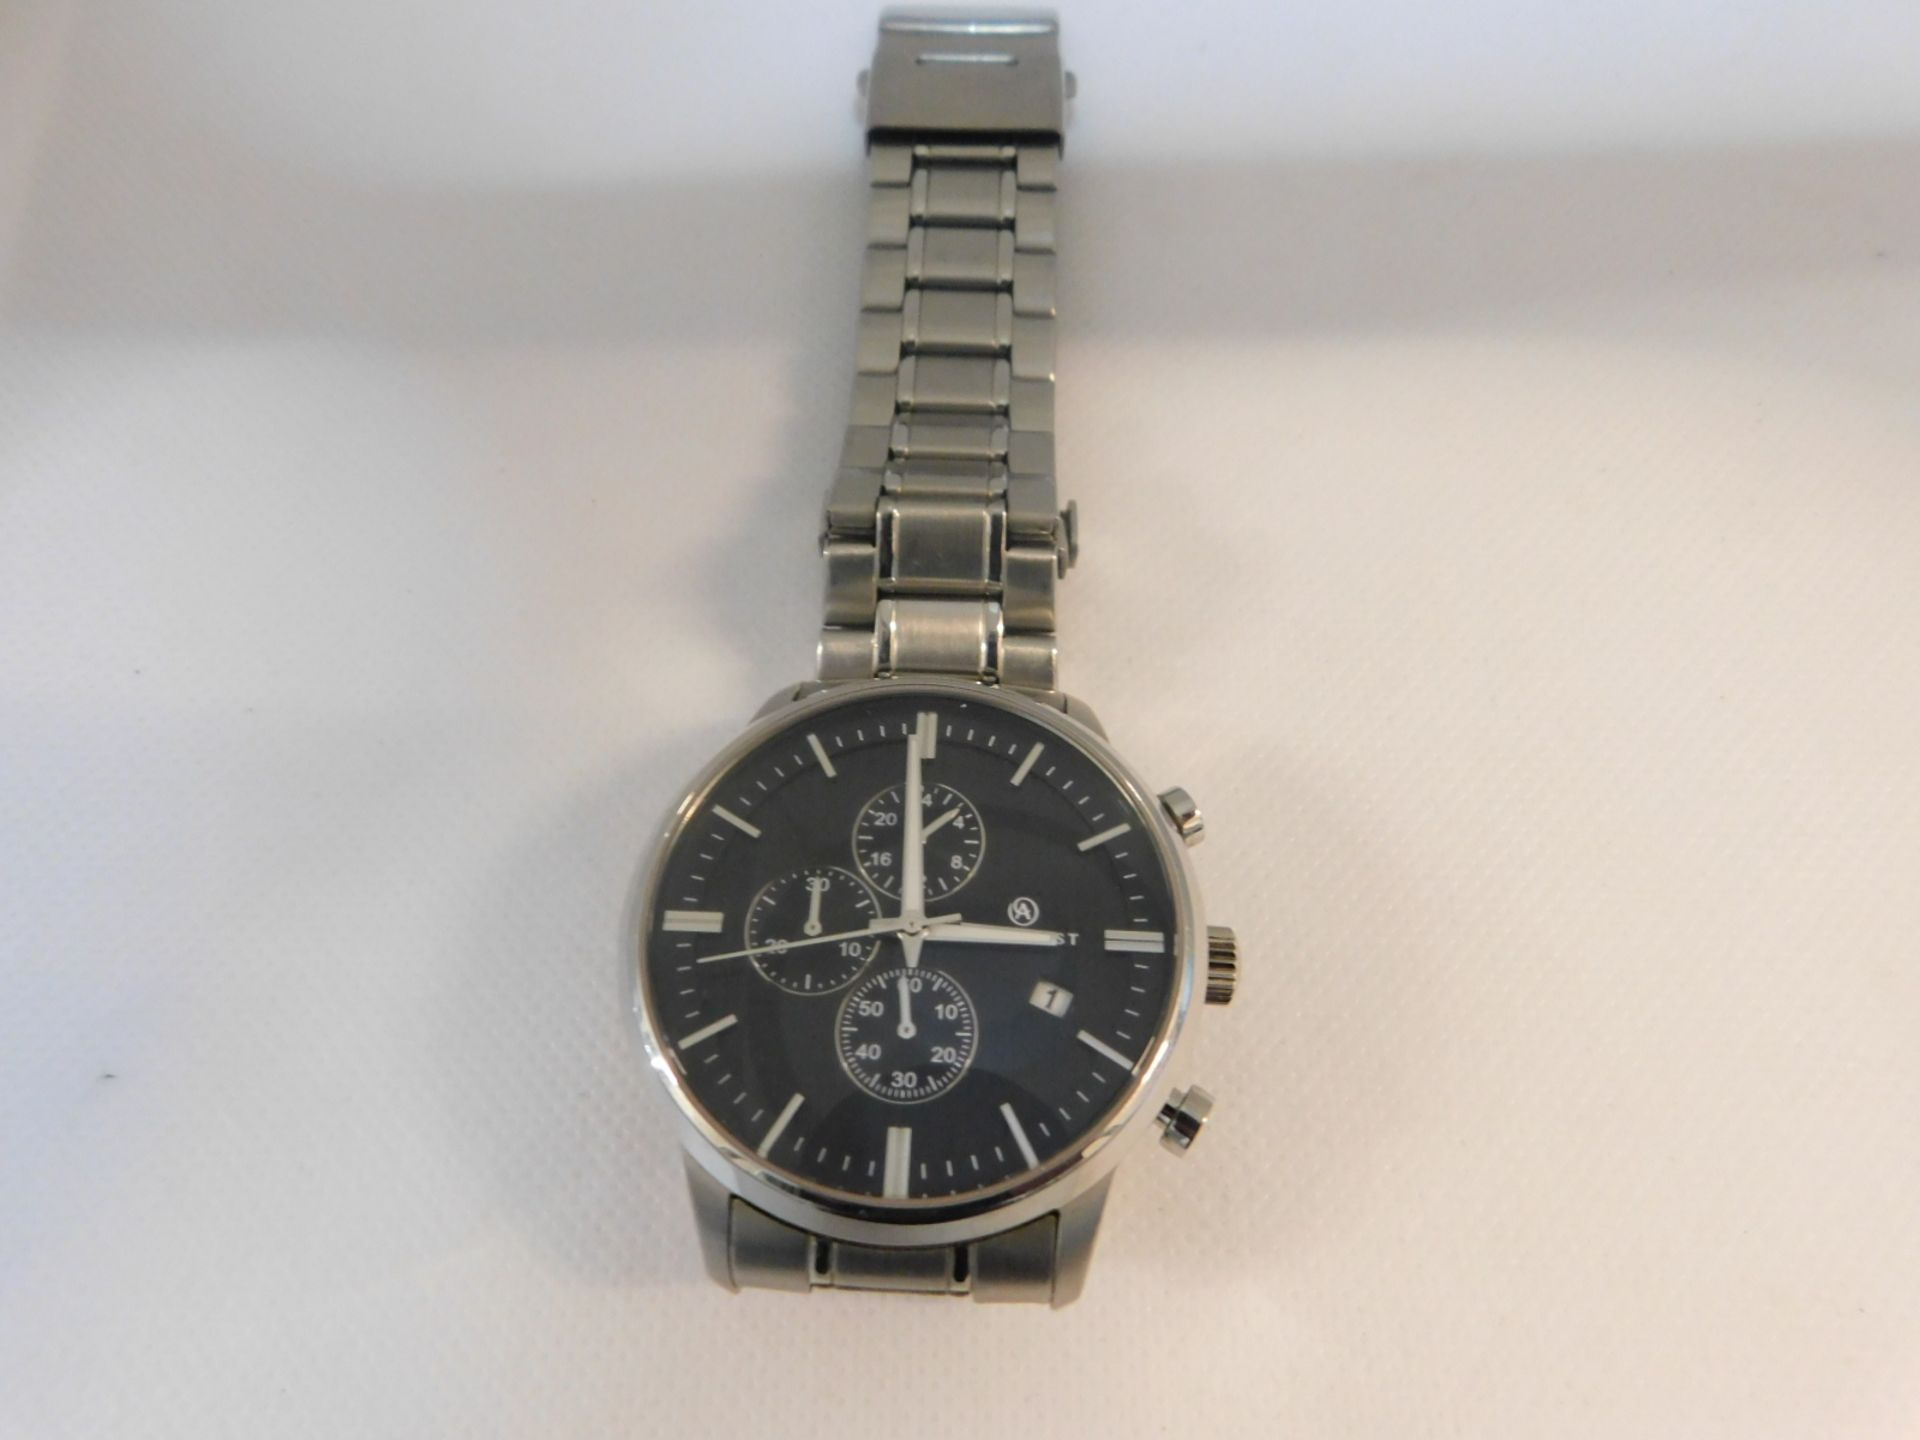 1 ACCURIST CHRONOGRAPH BLACK DIAL STAINLESS STEEL BRACELET GENTS WATCH MODEL 7059 RRP £149.99